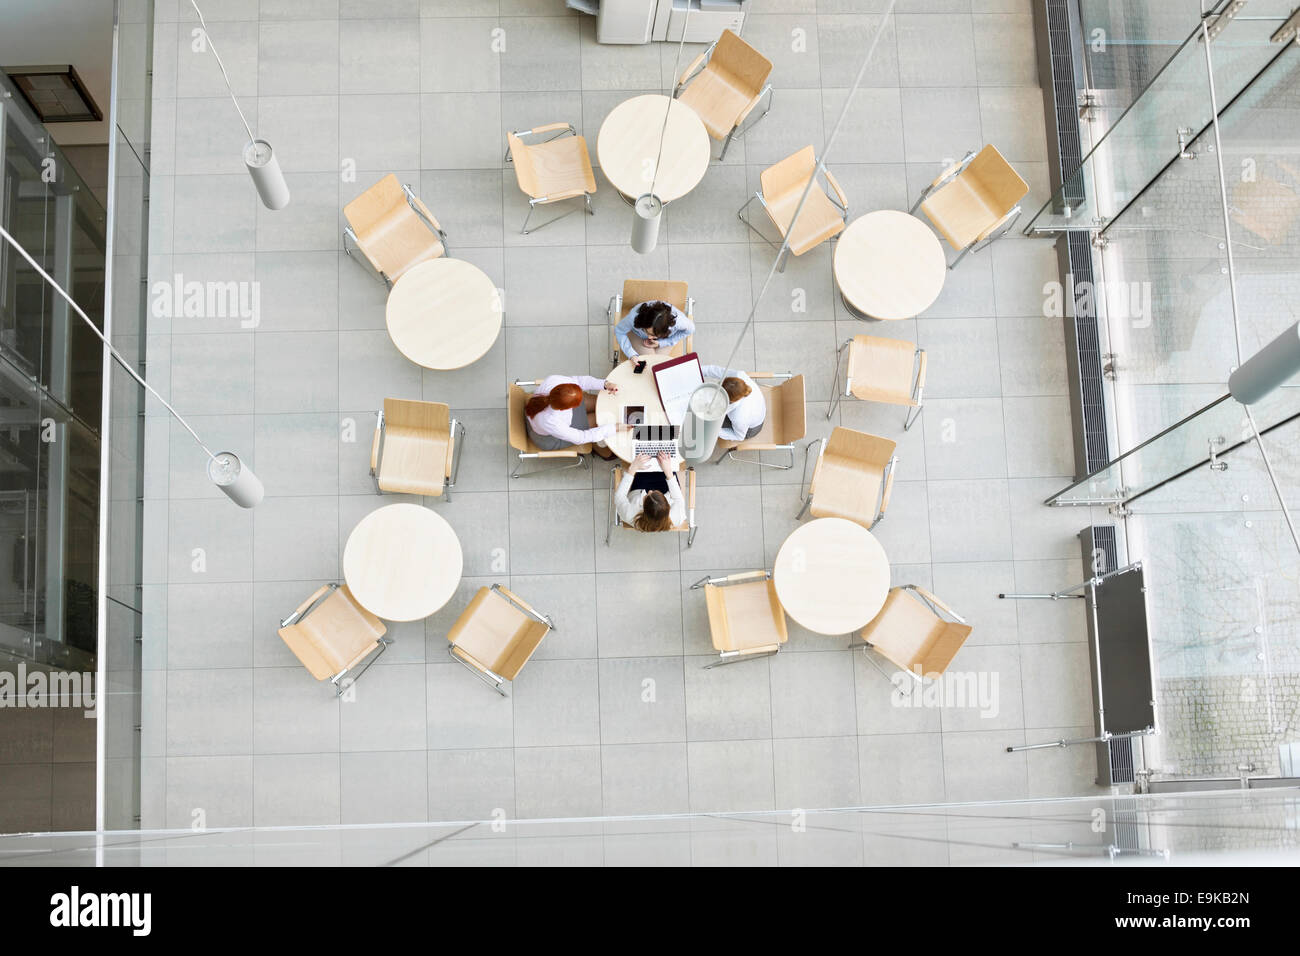 High angle view of businesswomen working in office canteen - Stock Image